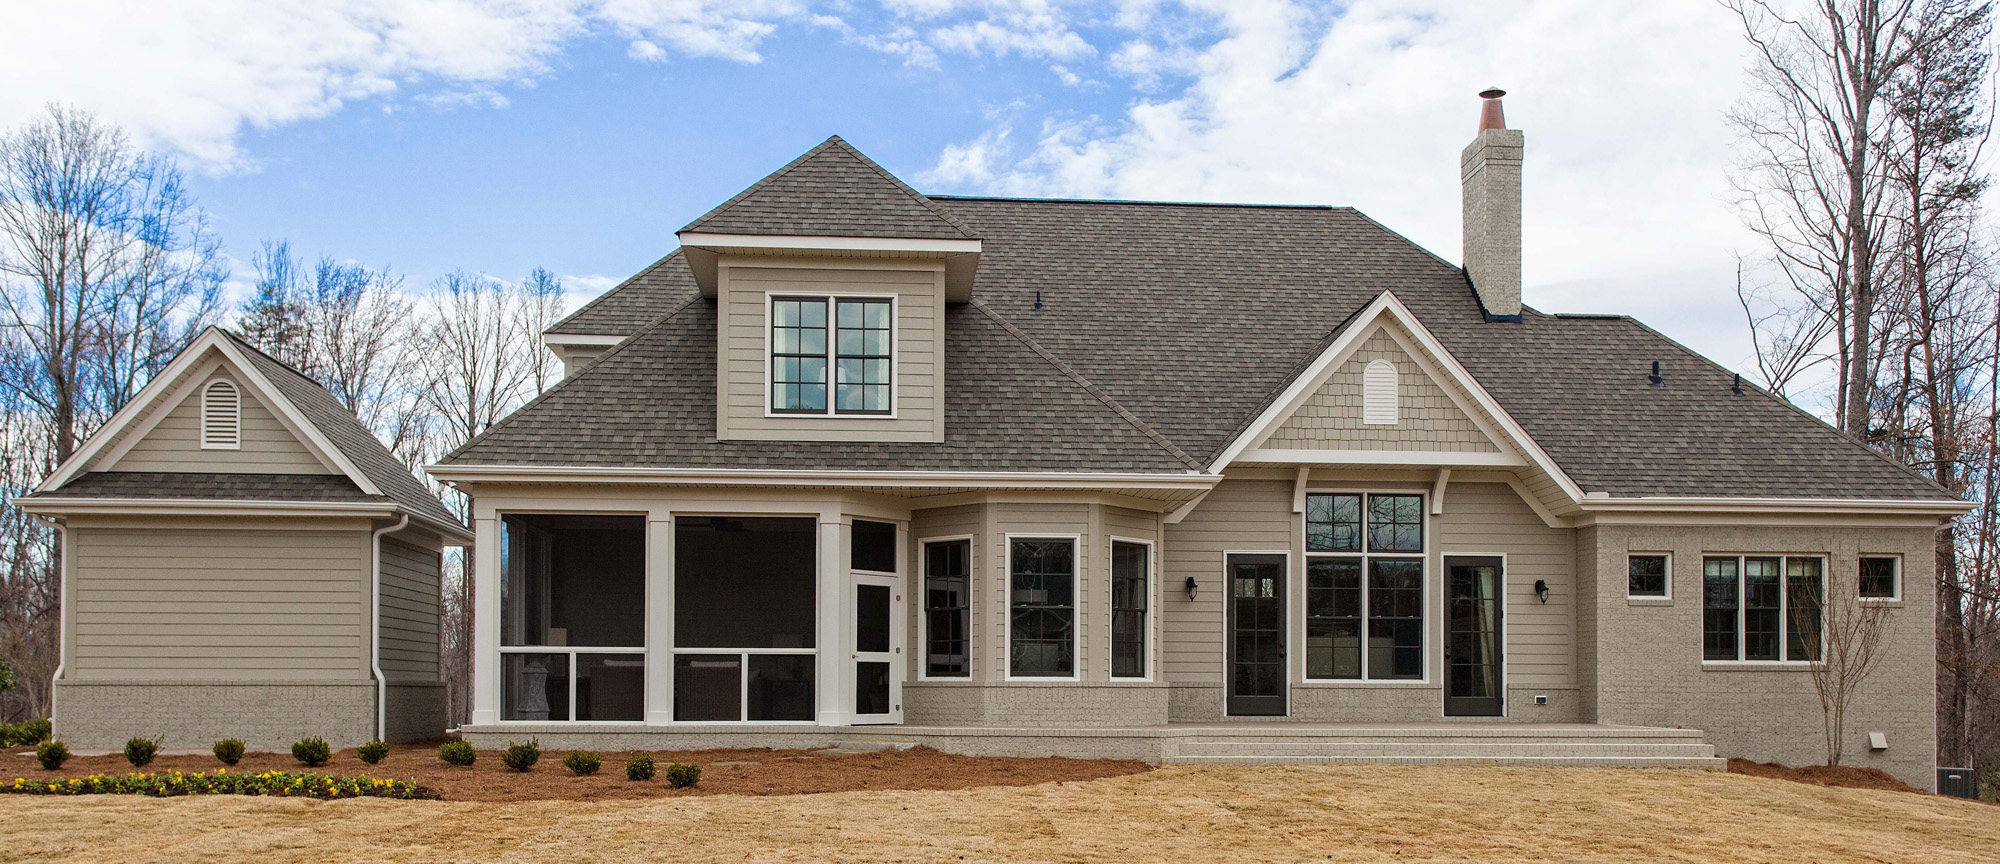 In Town Homes - Greywood at Hammett, Brighlife